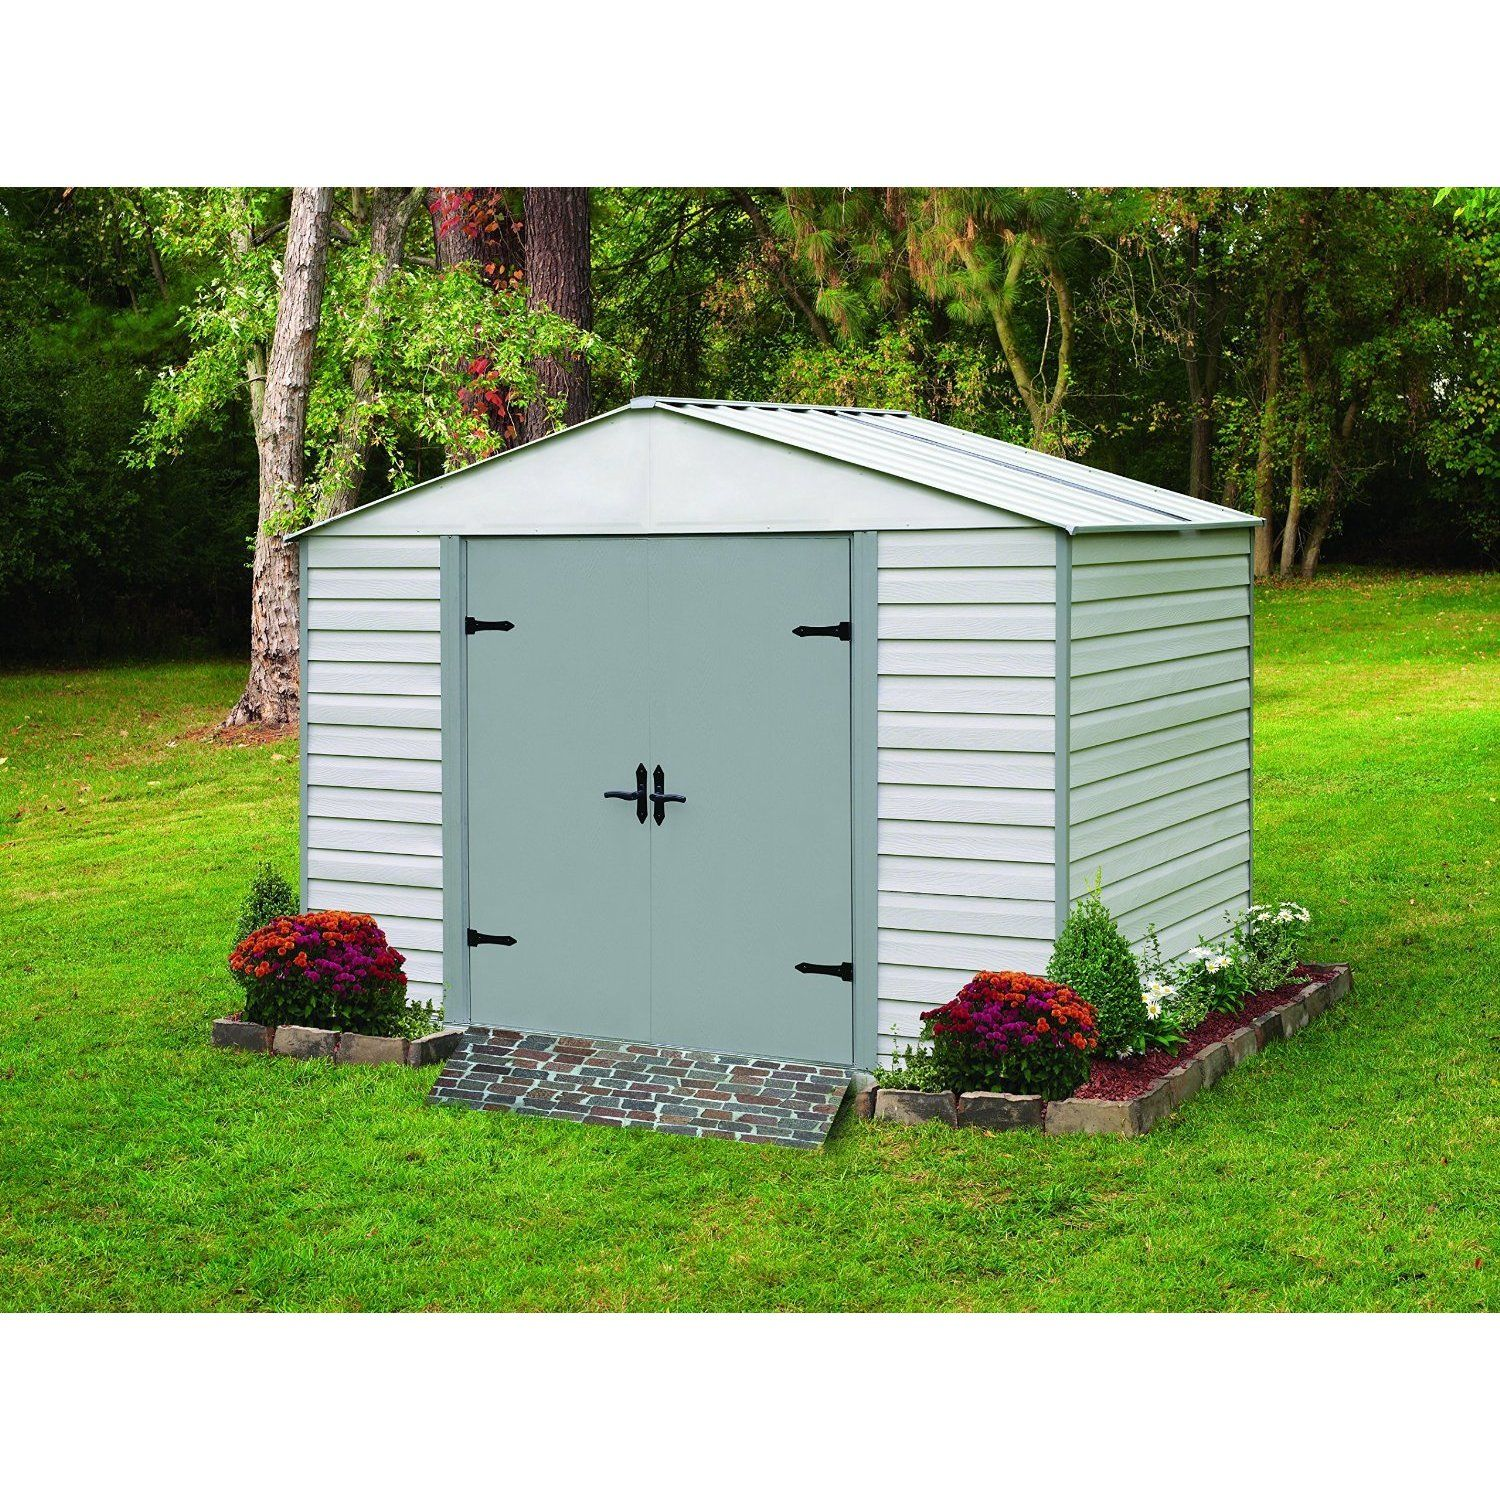 Online Shopping Bedding Furniture Electronics Jewelry Clothing More Steel Storage Sheds Garden Shed Kits Steel Sheds